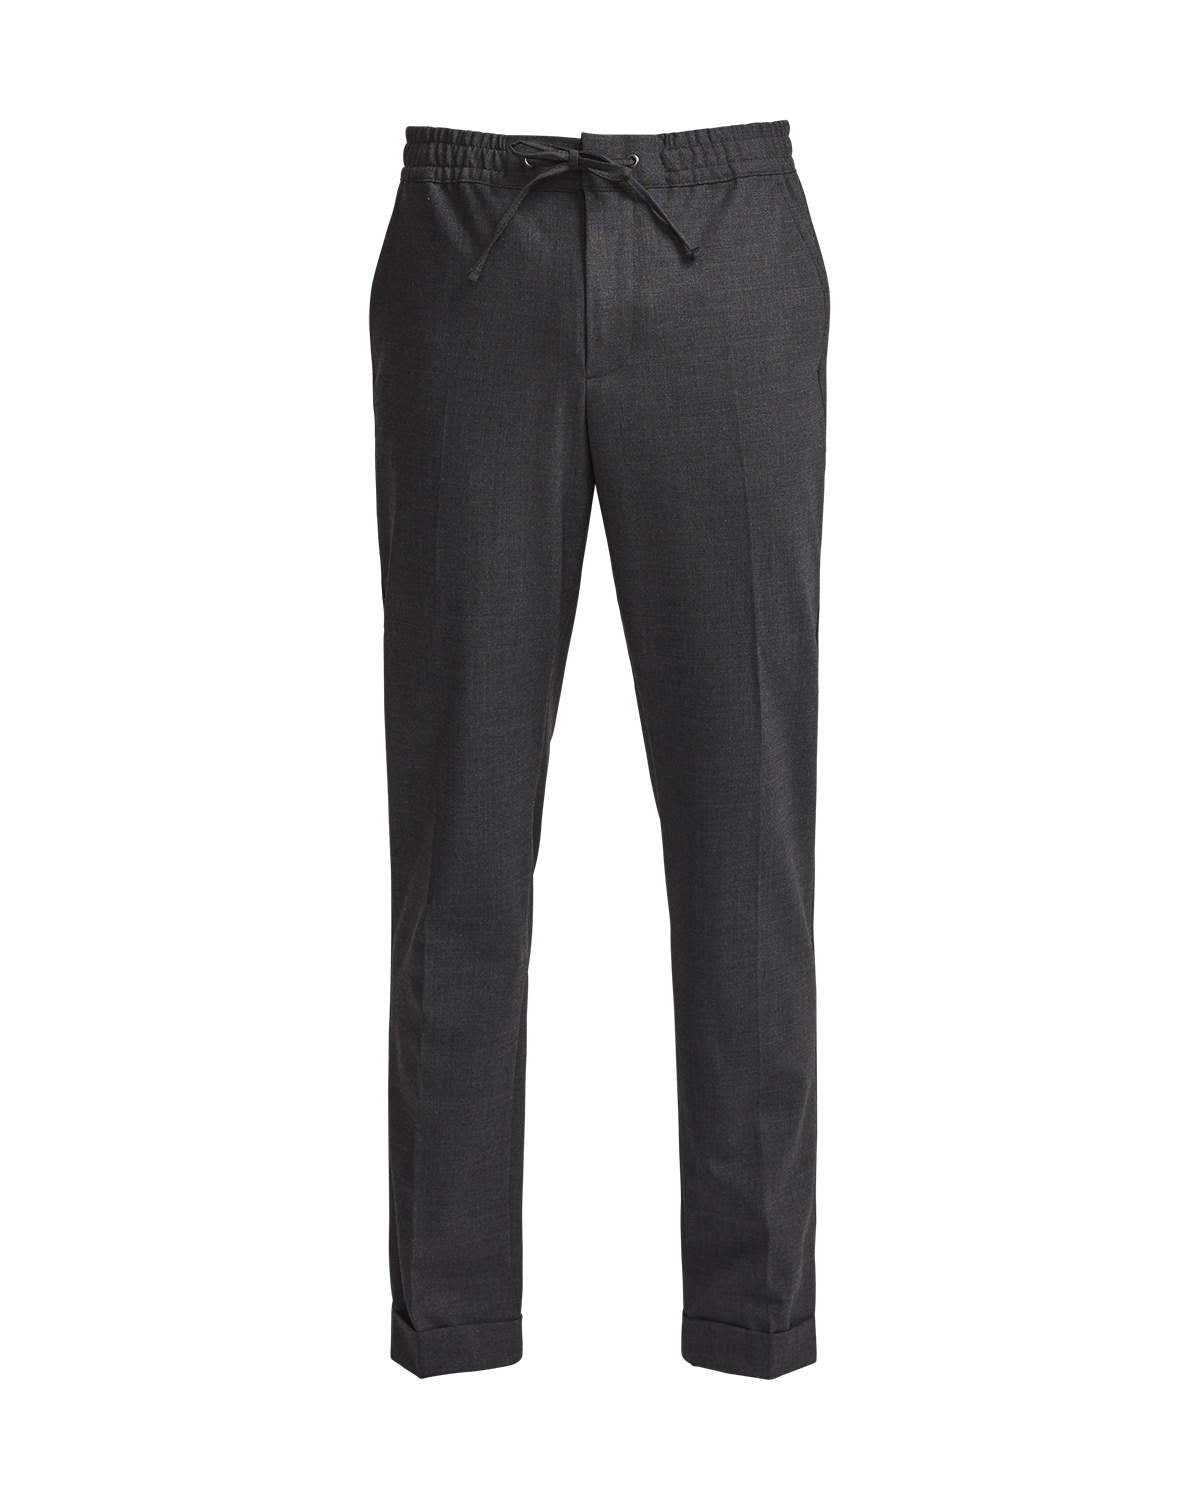 SEBASTIAN 1325 WOOL POLYESTER DRAWSTRING TROUSERS - HoneyMustard